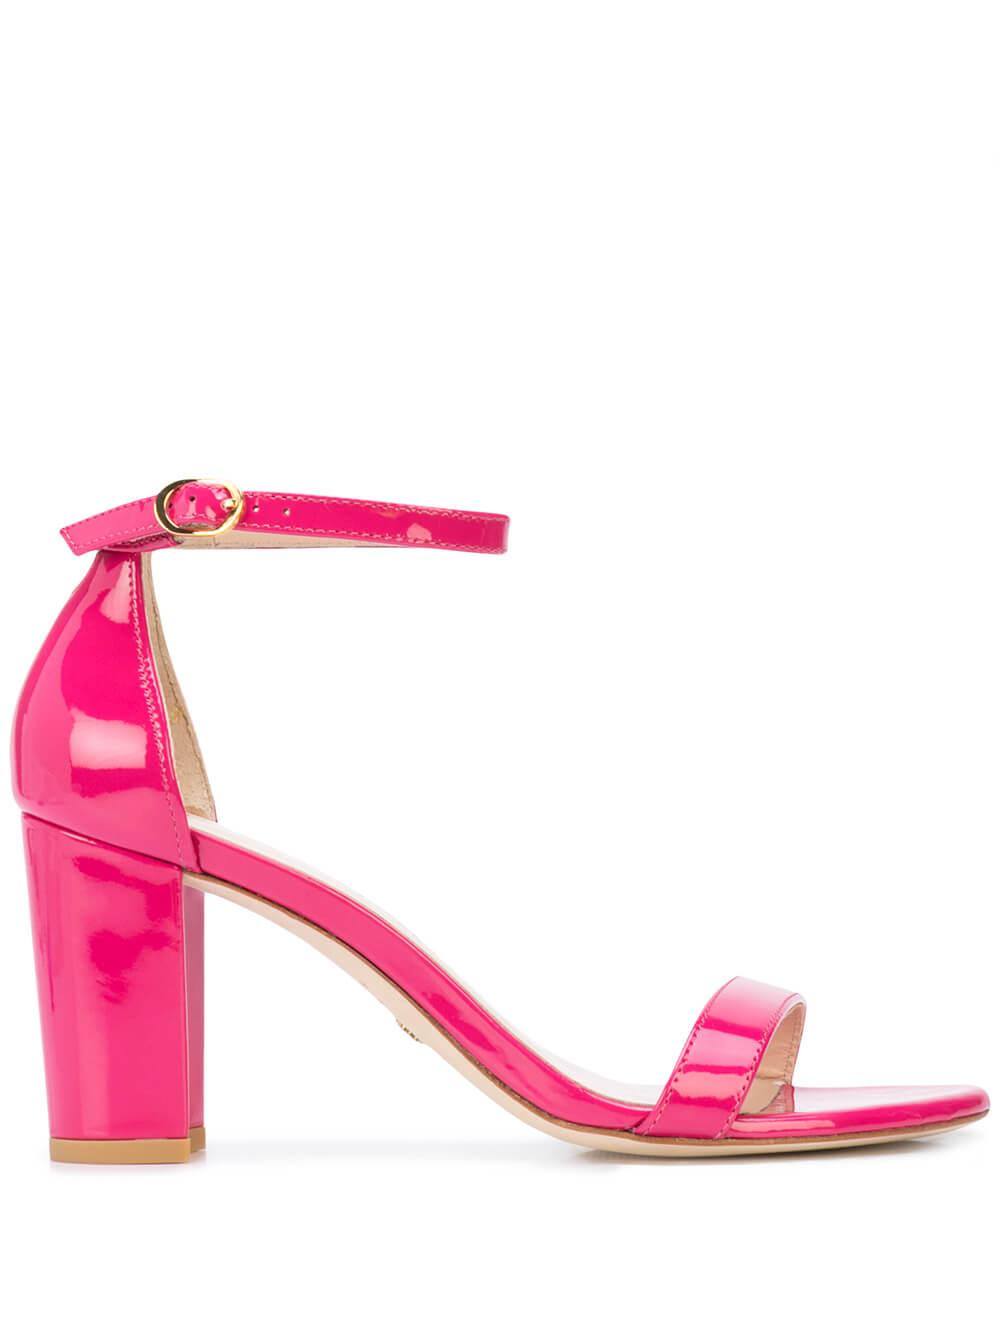 80mm Block Heel Sandal With Ankle Strap Item # NEARLYNUDE-R20